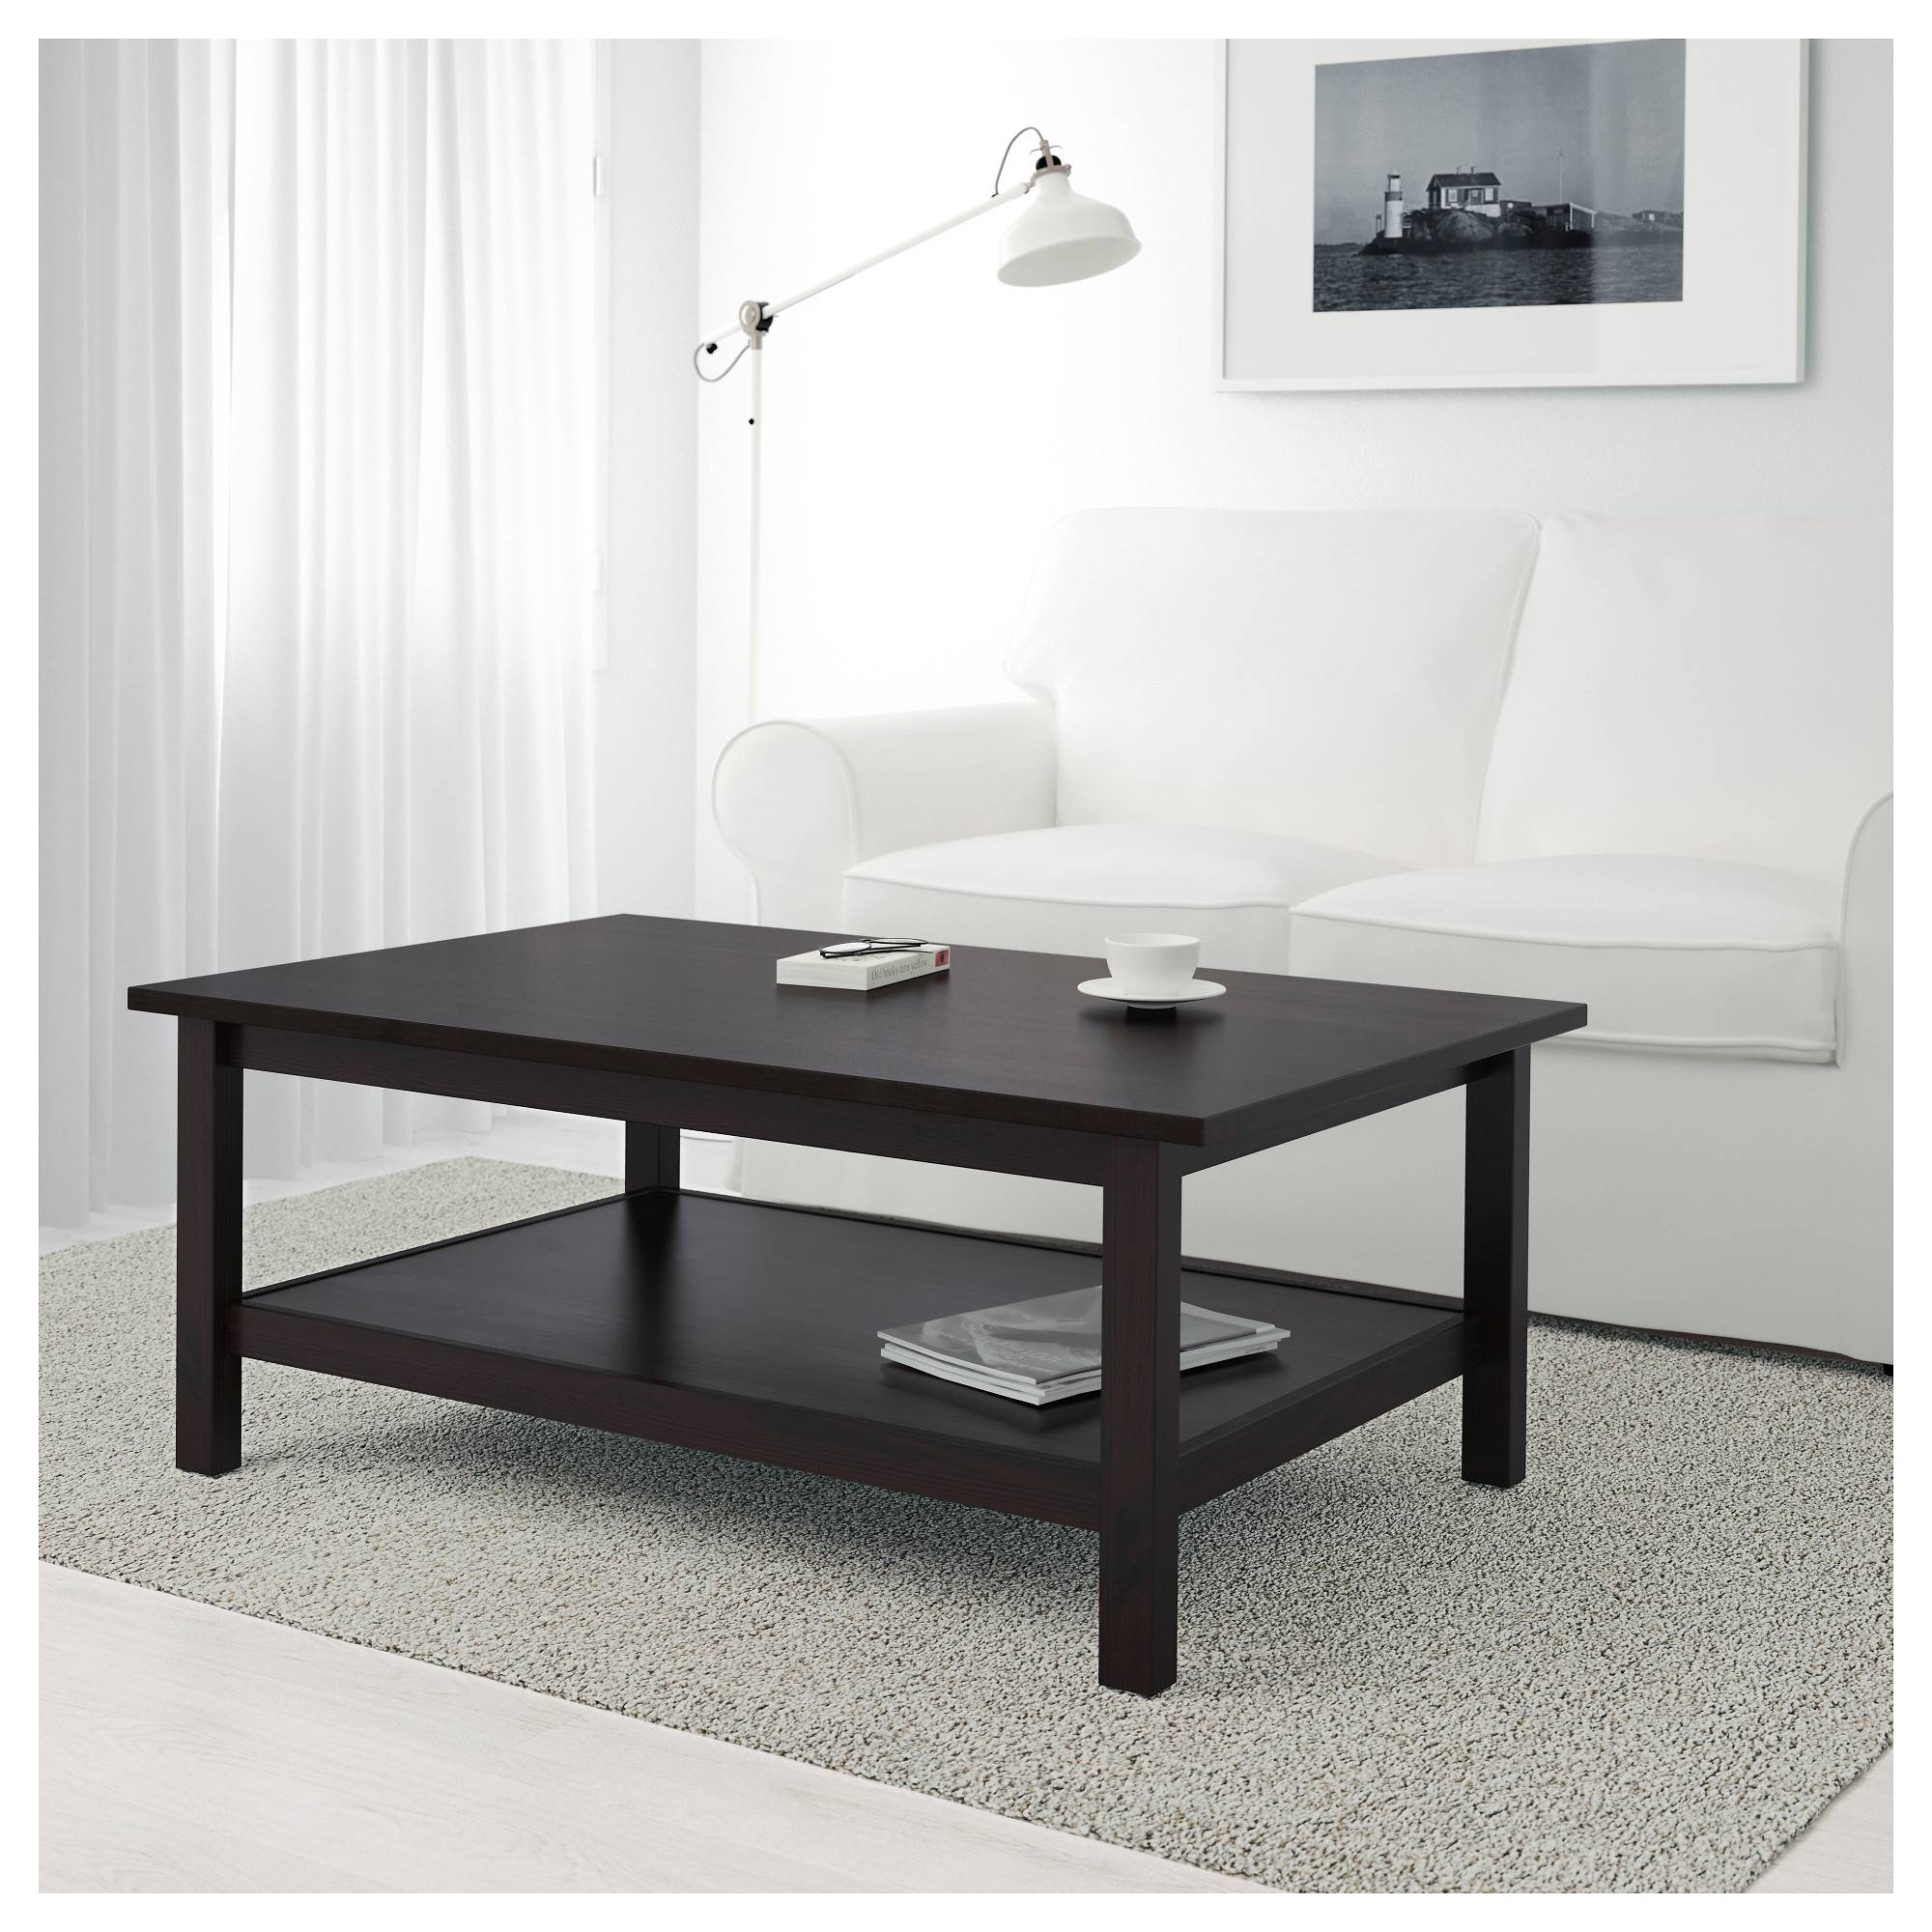 Hemnes Coffee Table - Black-Brown - Ikea within White And Brown Coffee Tables (Image 18 of 30)